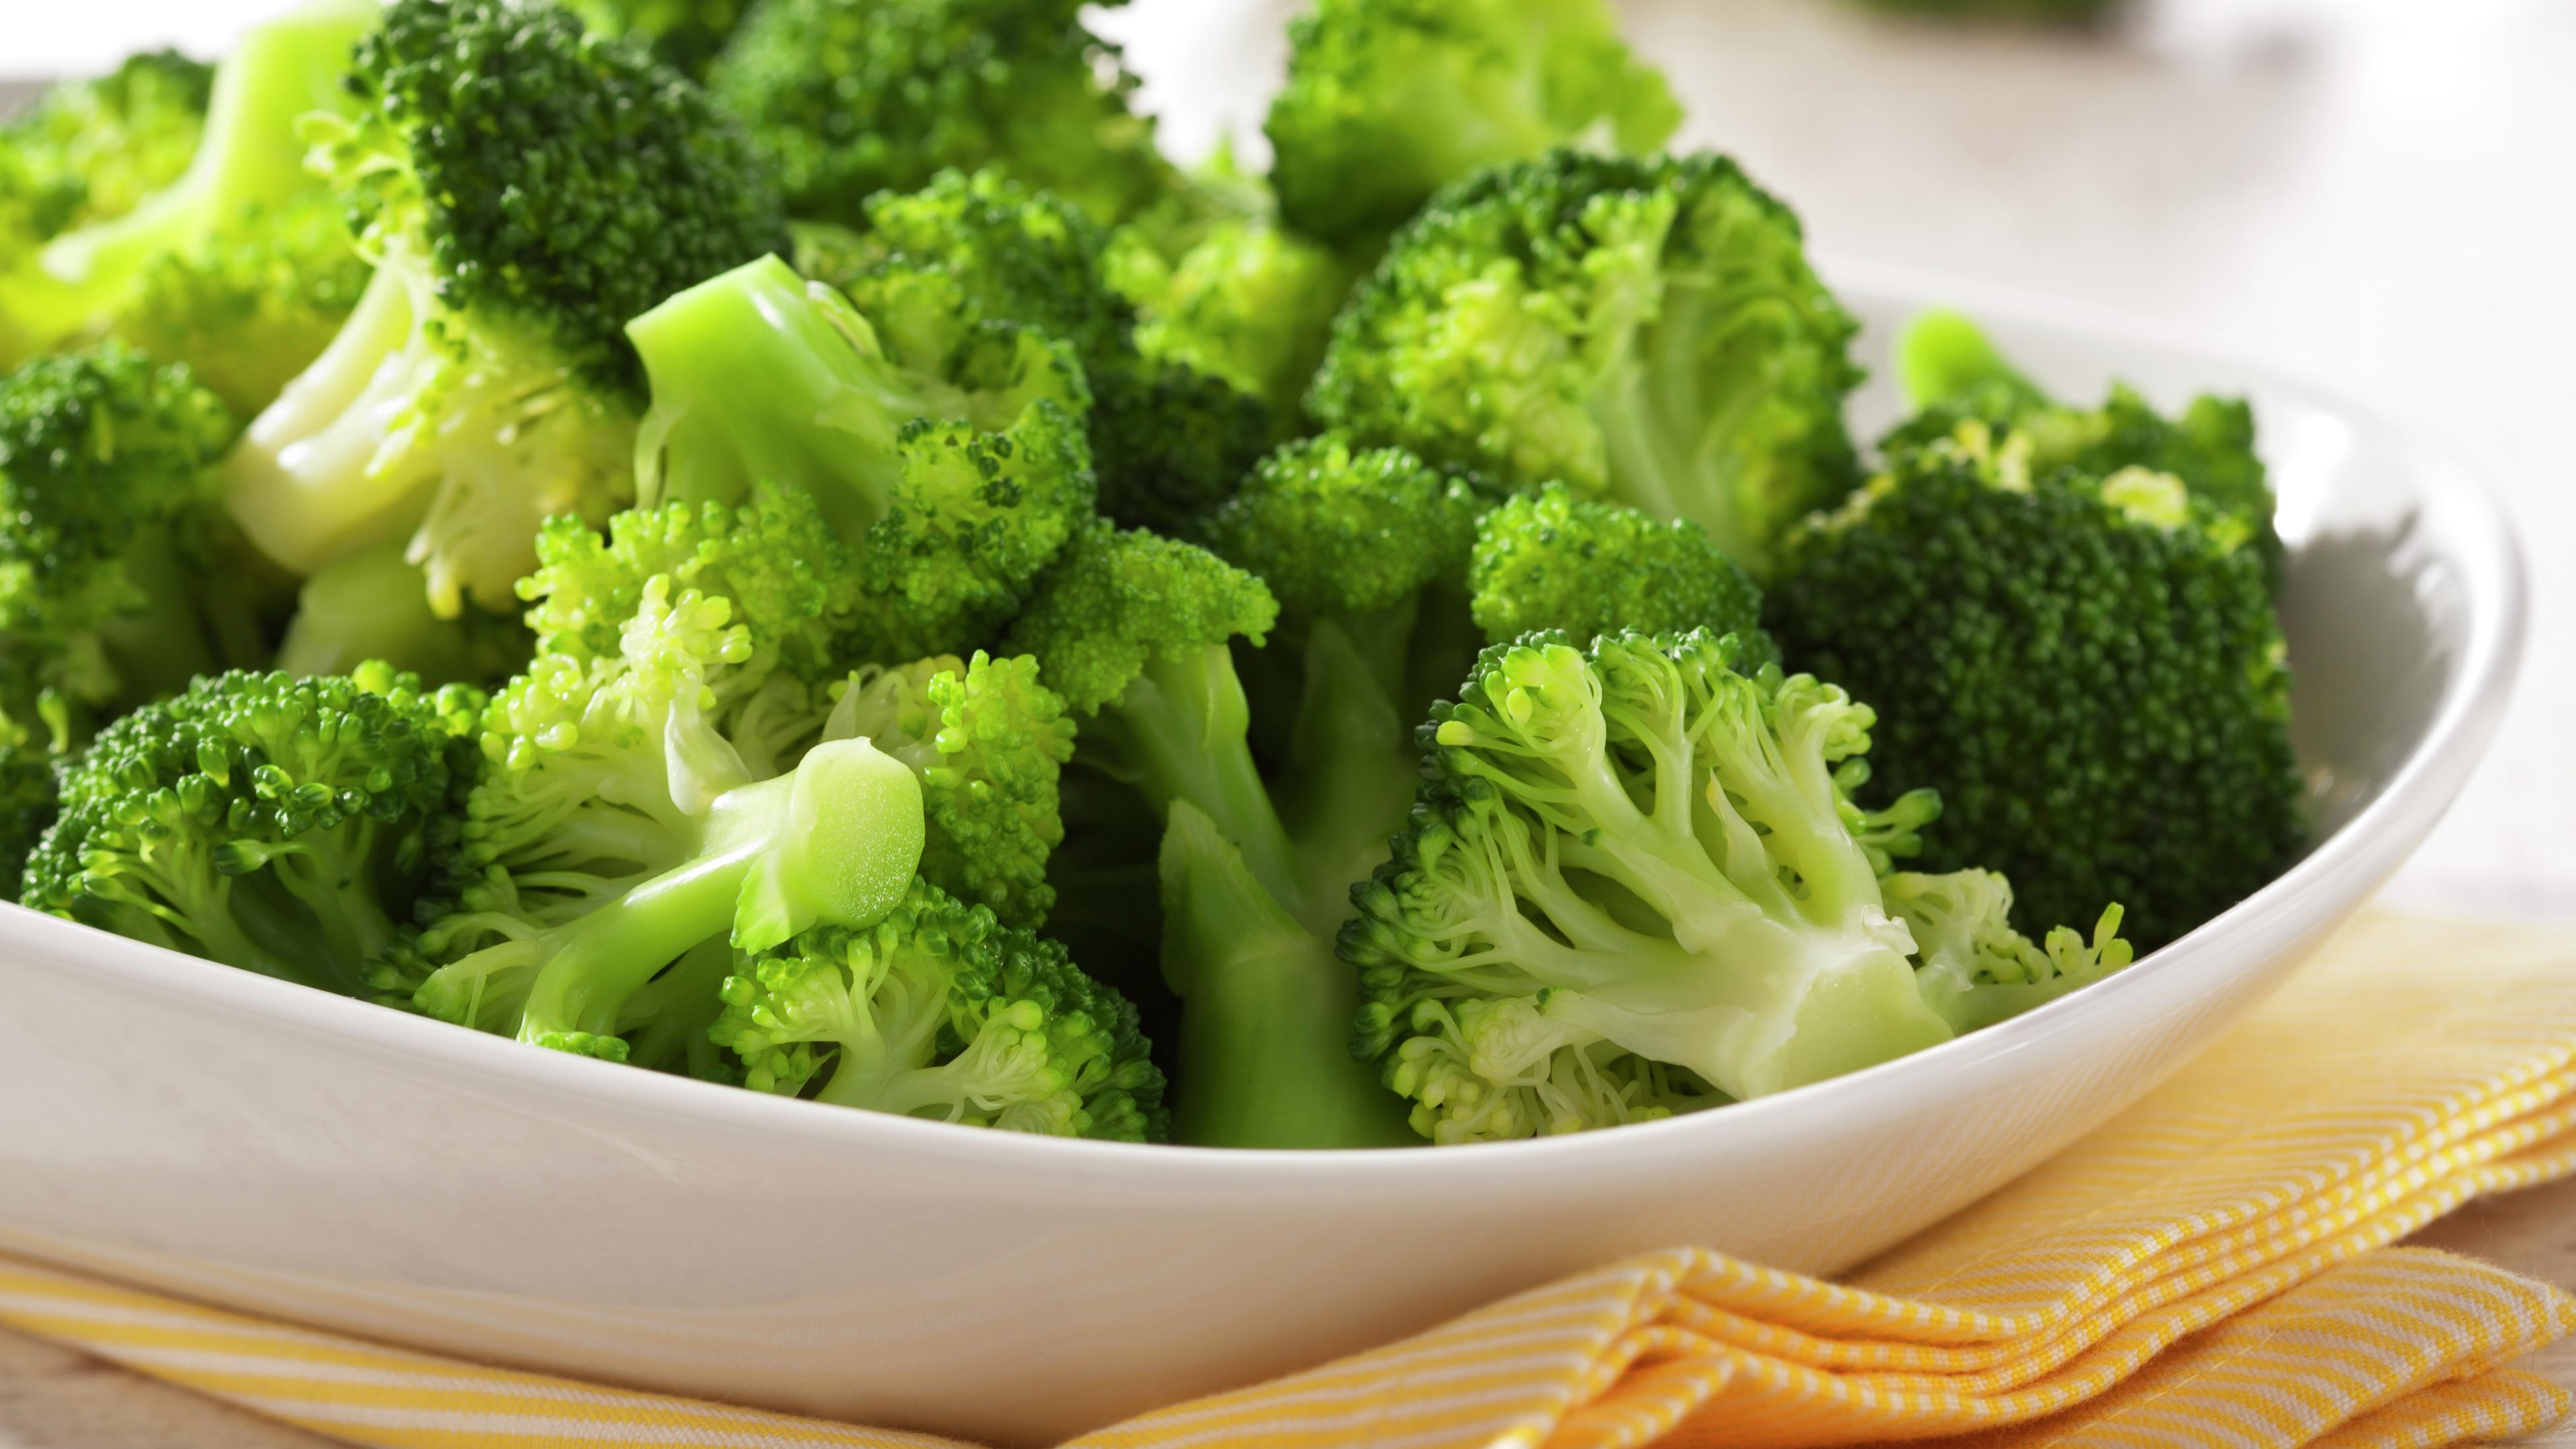 Cook broccoli in a bowl